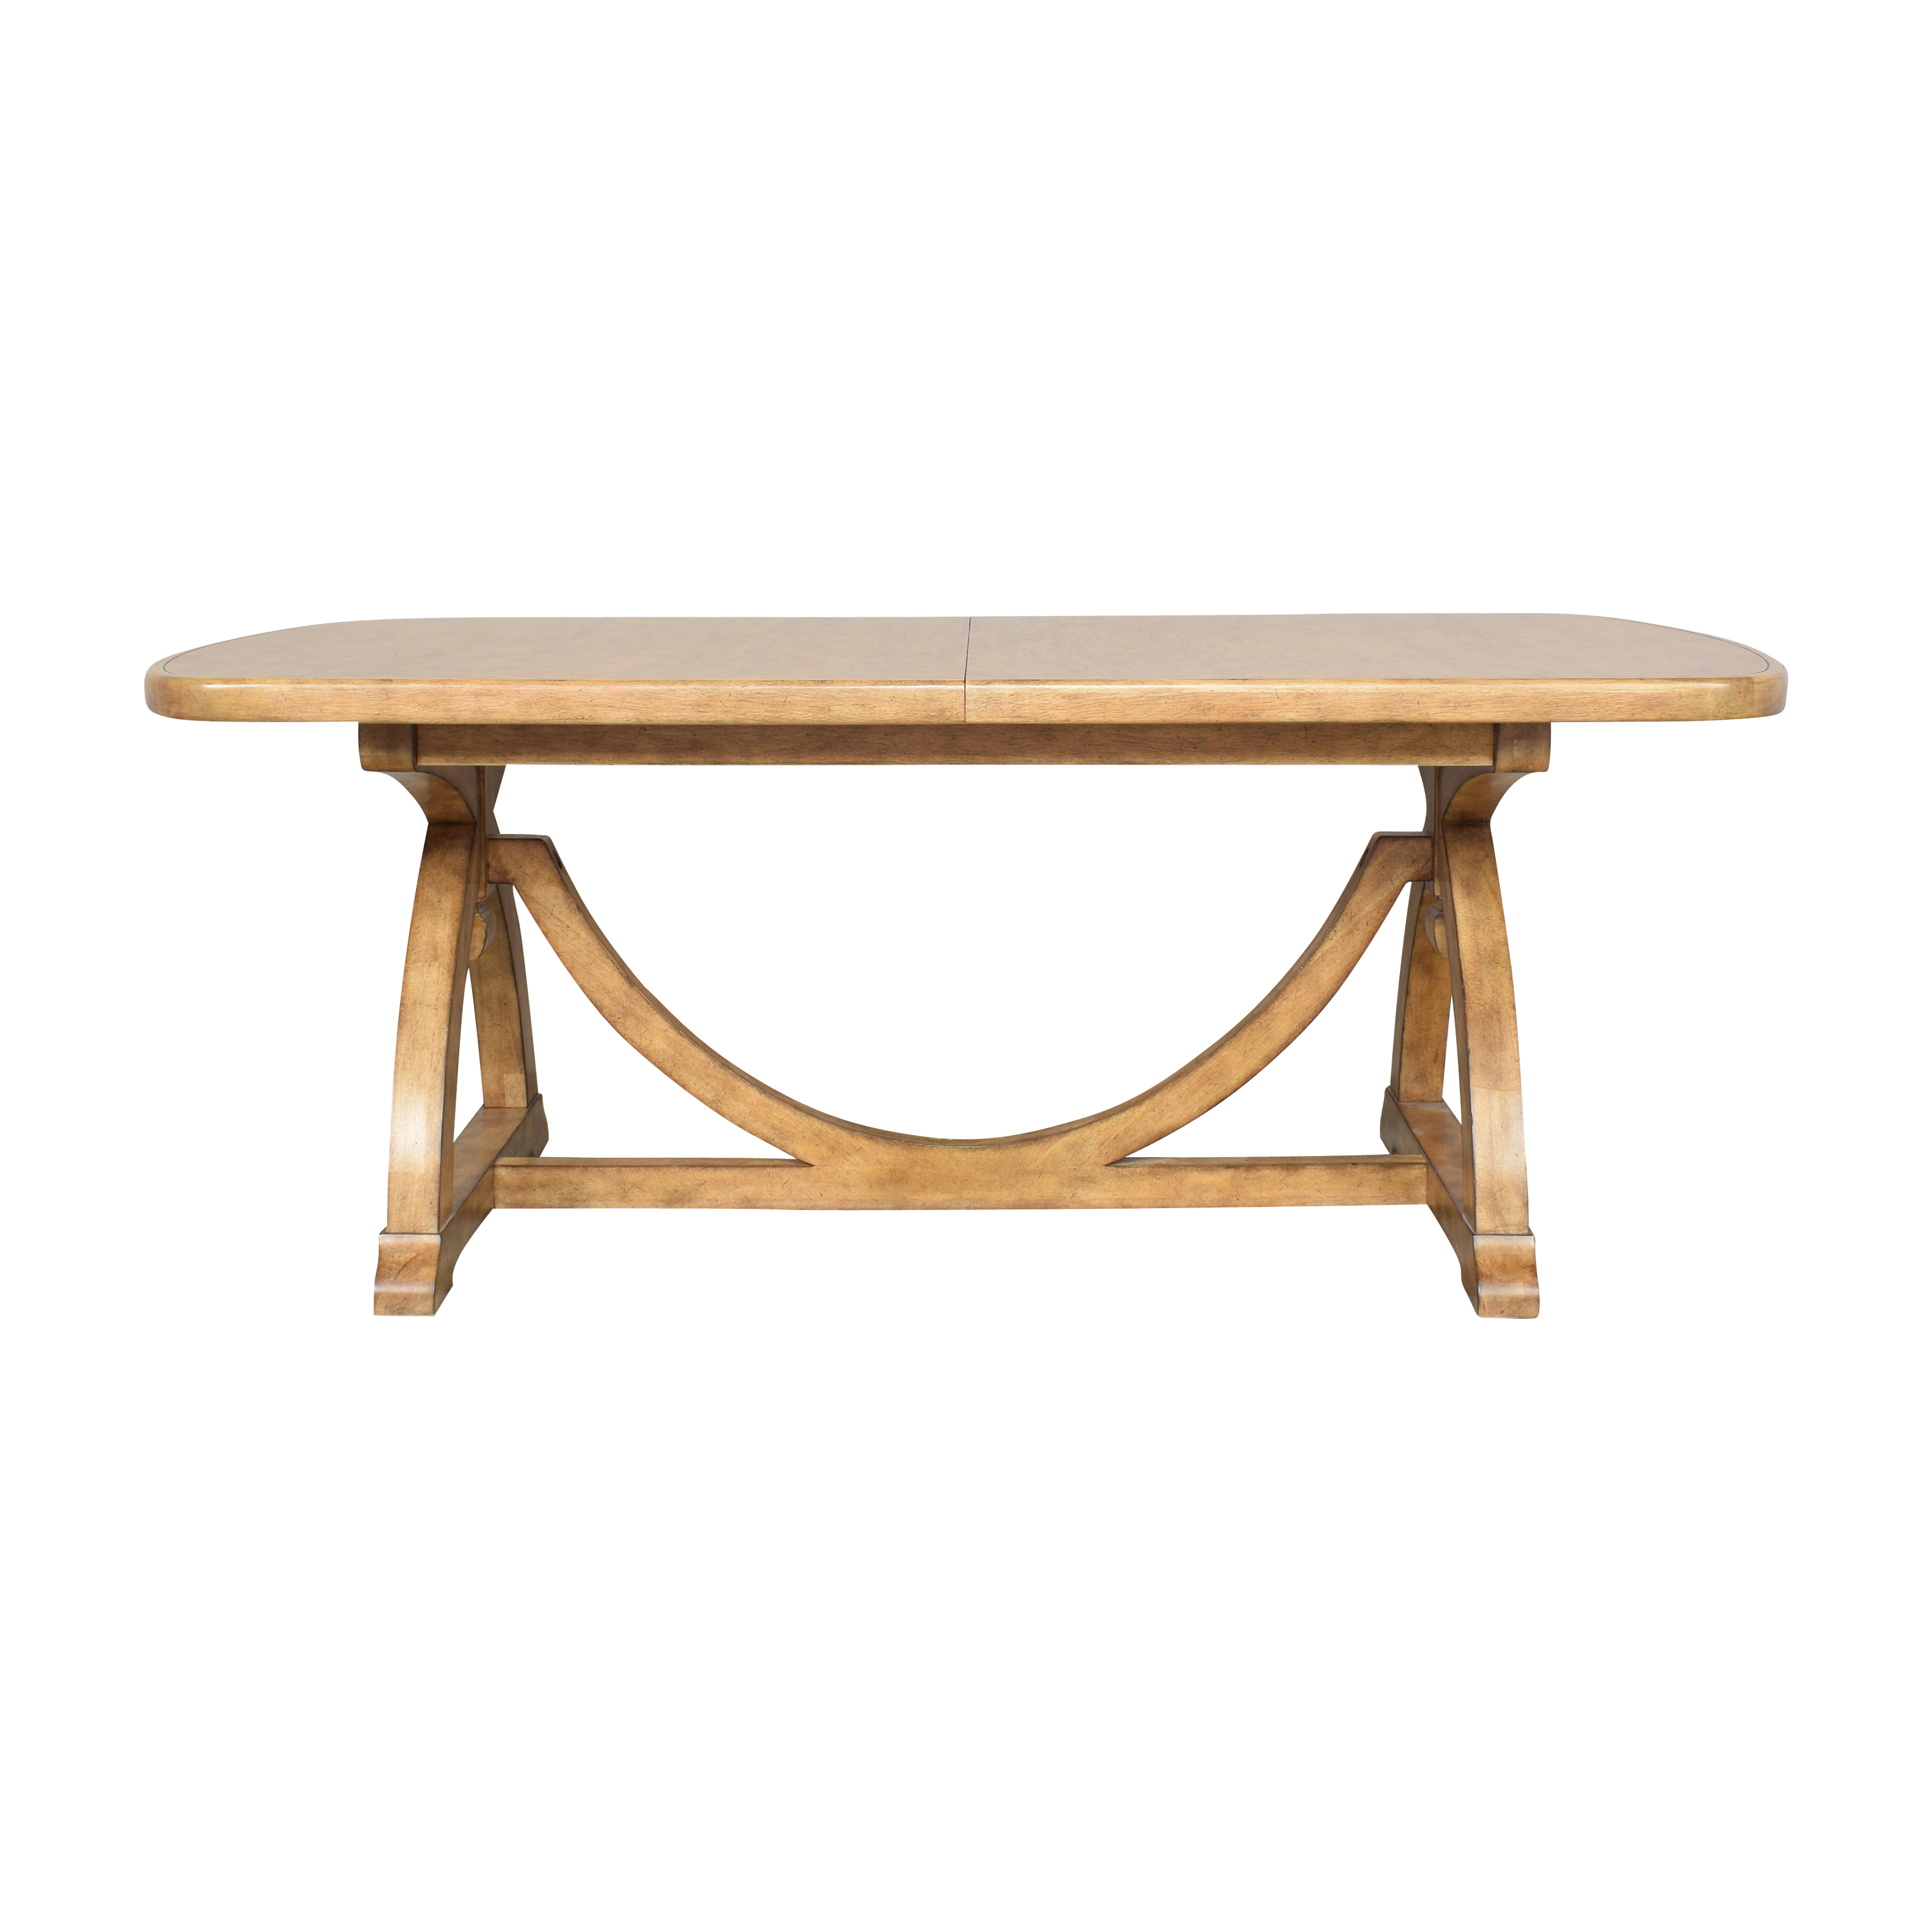 Thomasville Thomasville Reinventions Pacific Trestle Dining Table pa